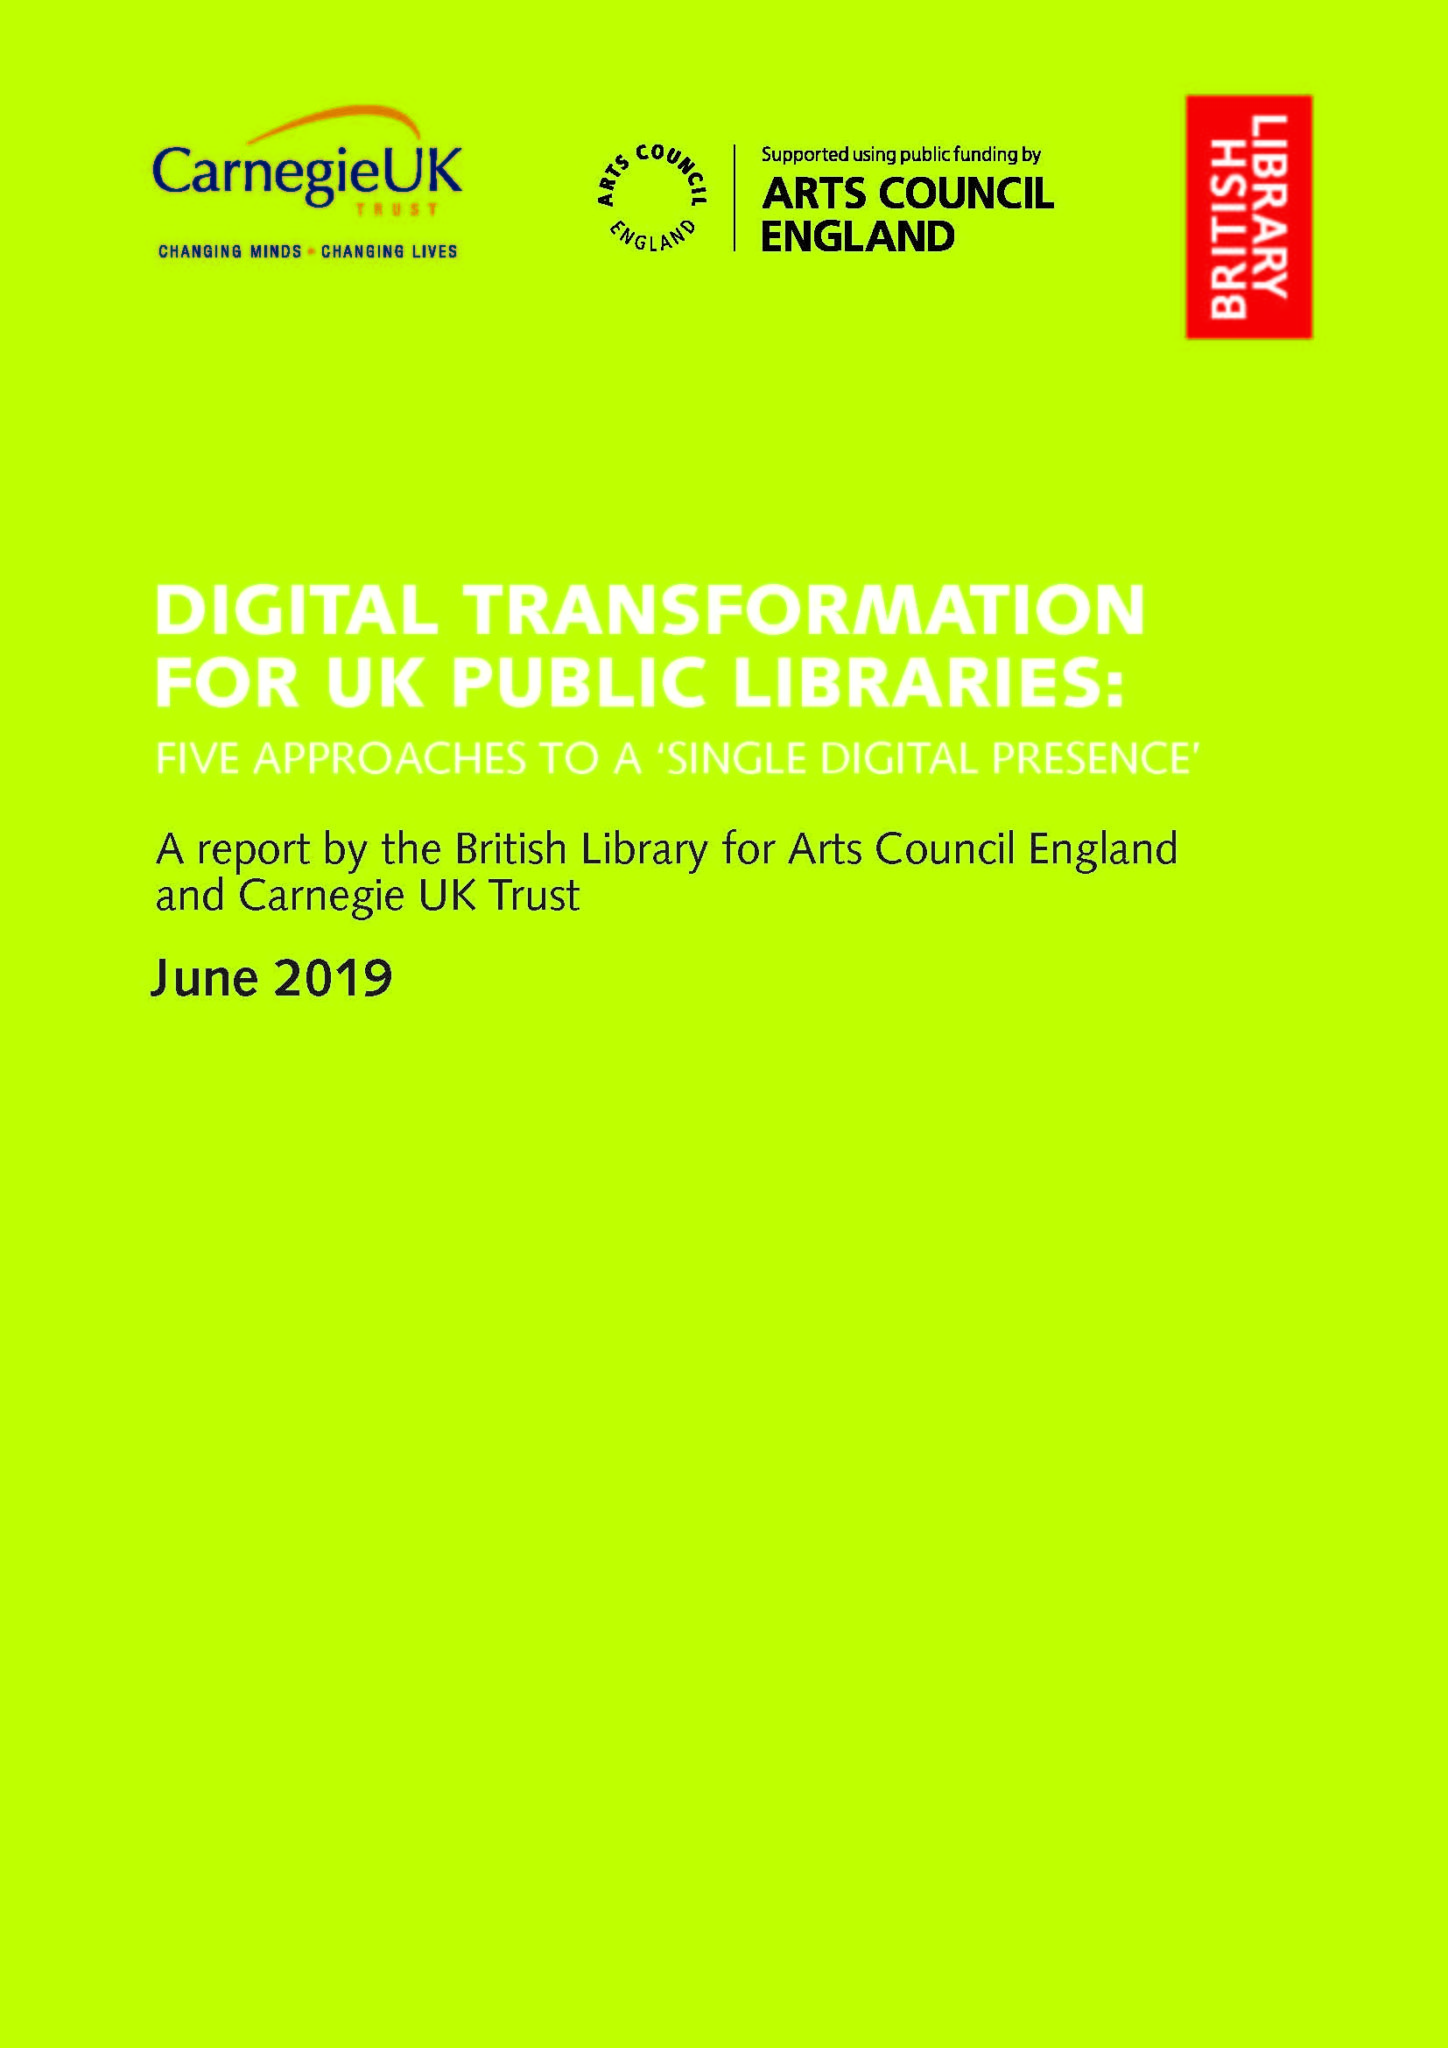 Digital Transformation for UK Public Libraries: Five approaches to a 'Single Digital Presence'